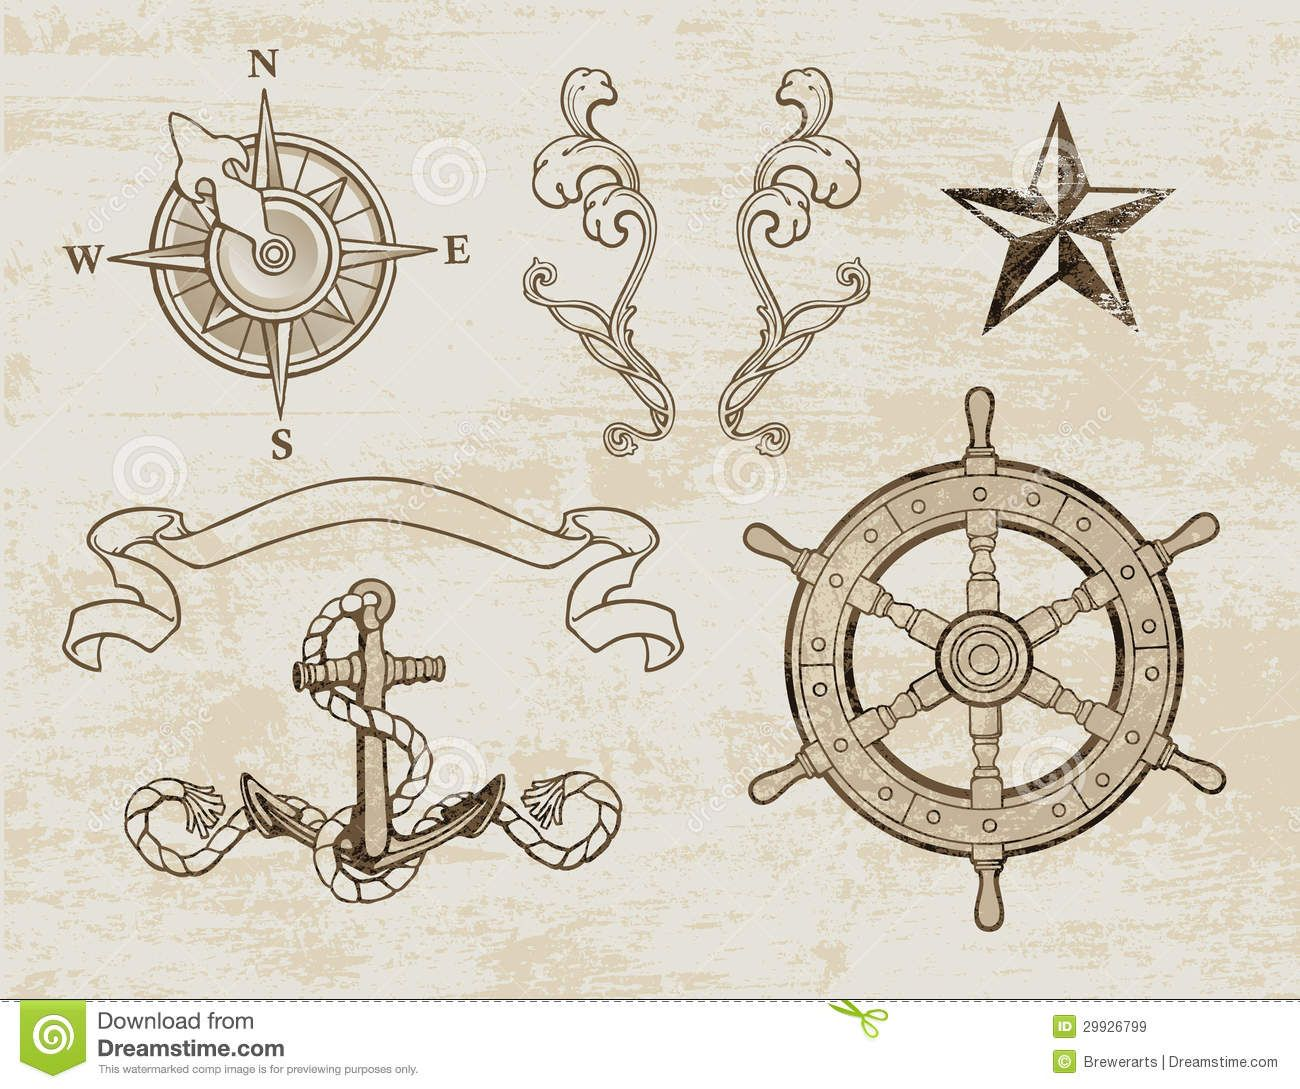 old map compass designs.